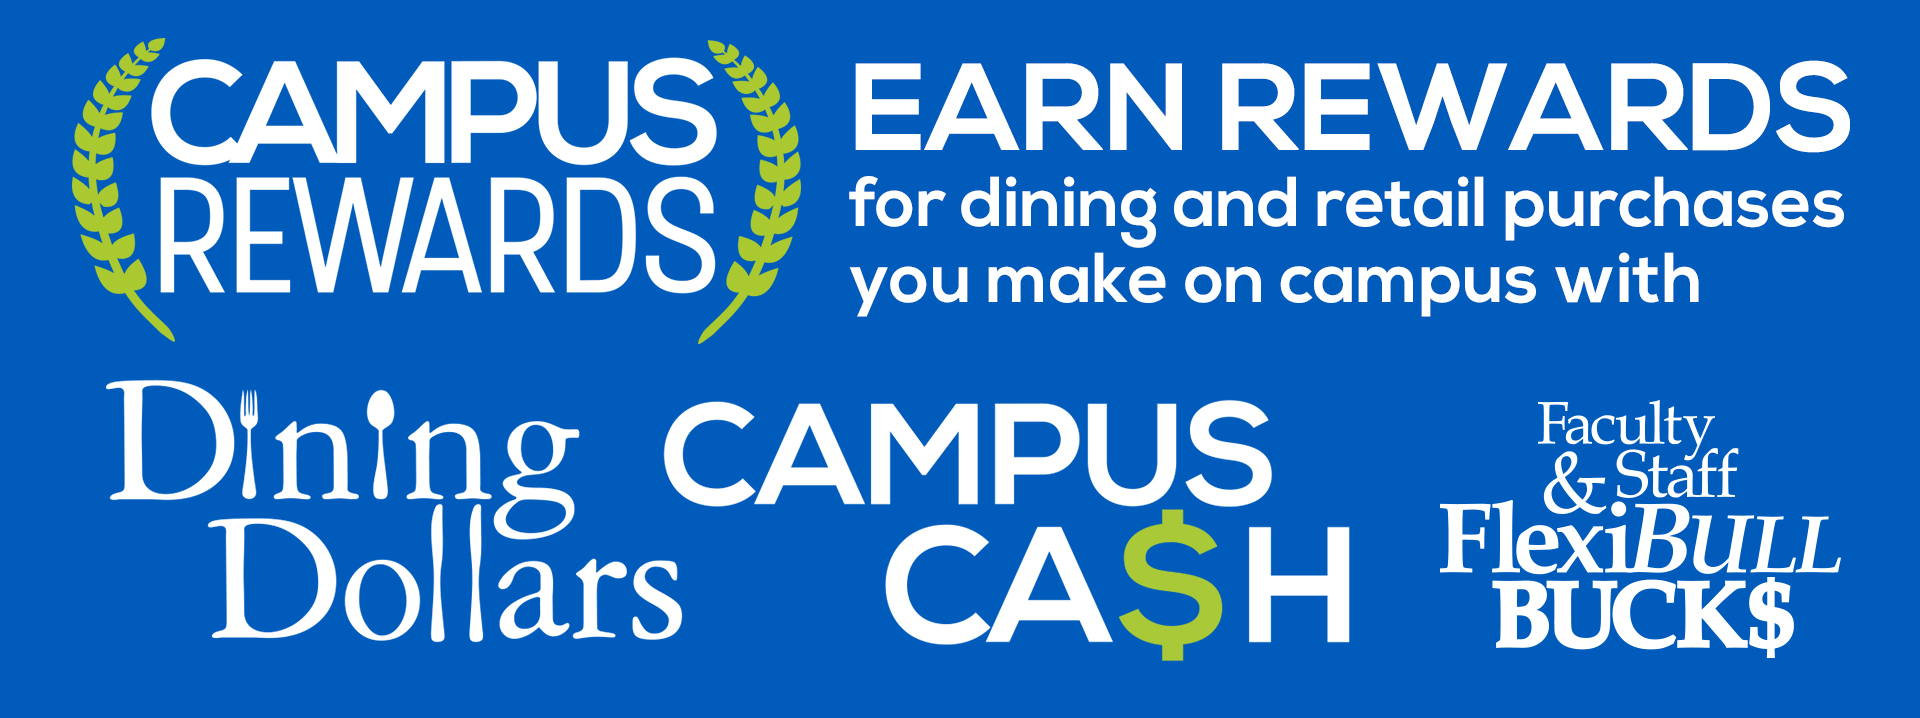 Earn rewards for dining and retail purchases you make on campus with Dining Dollars, Campus Cash, and FlexiBULL Bucks